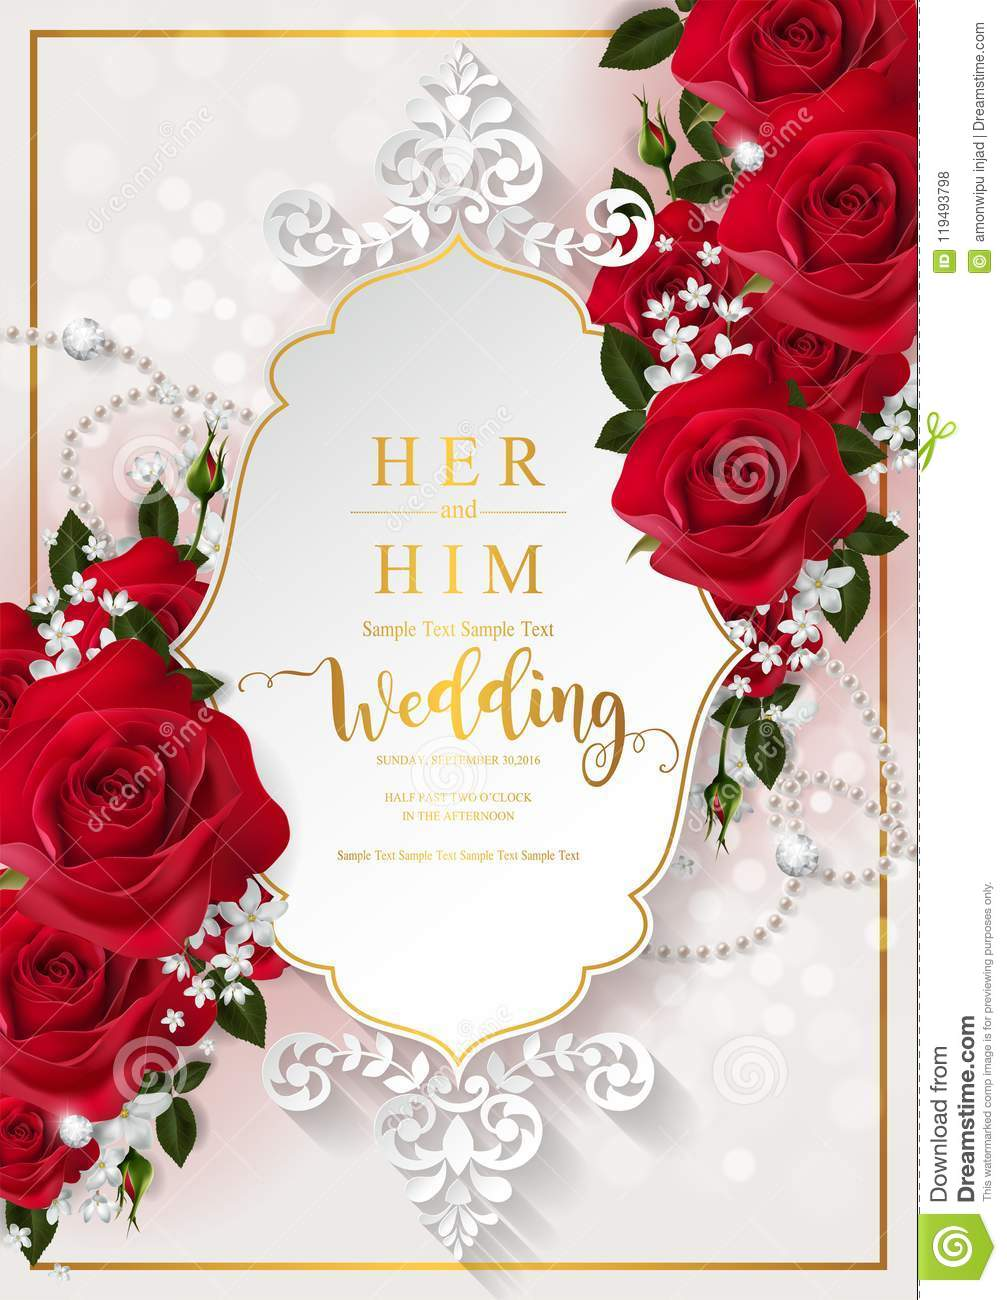 Famous Wedding Invite Examples Composition - Invitations and ...